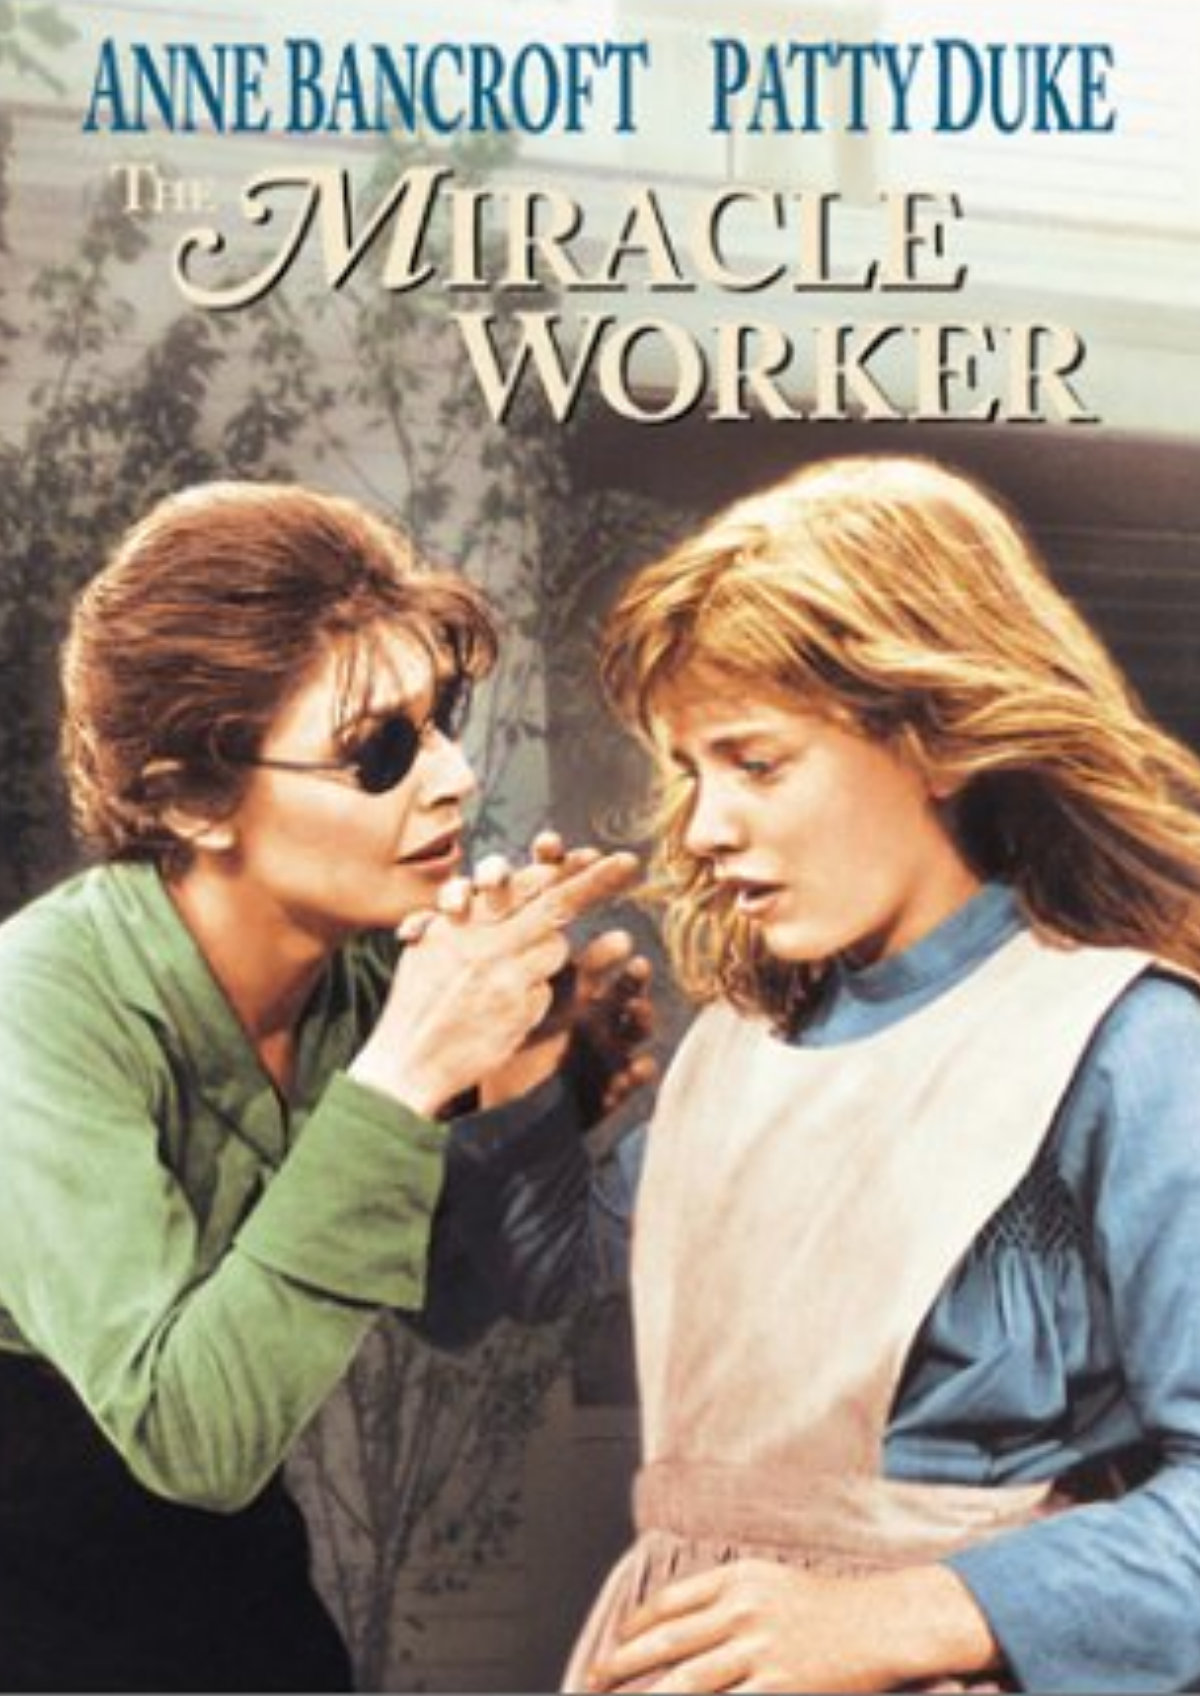 'The Miracle Worker' movie poster